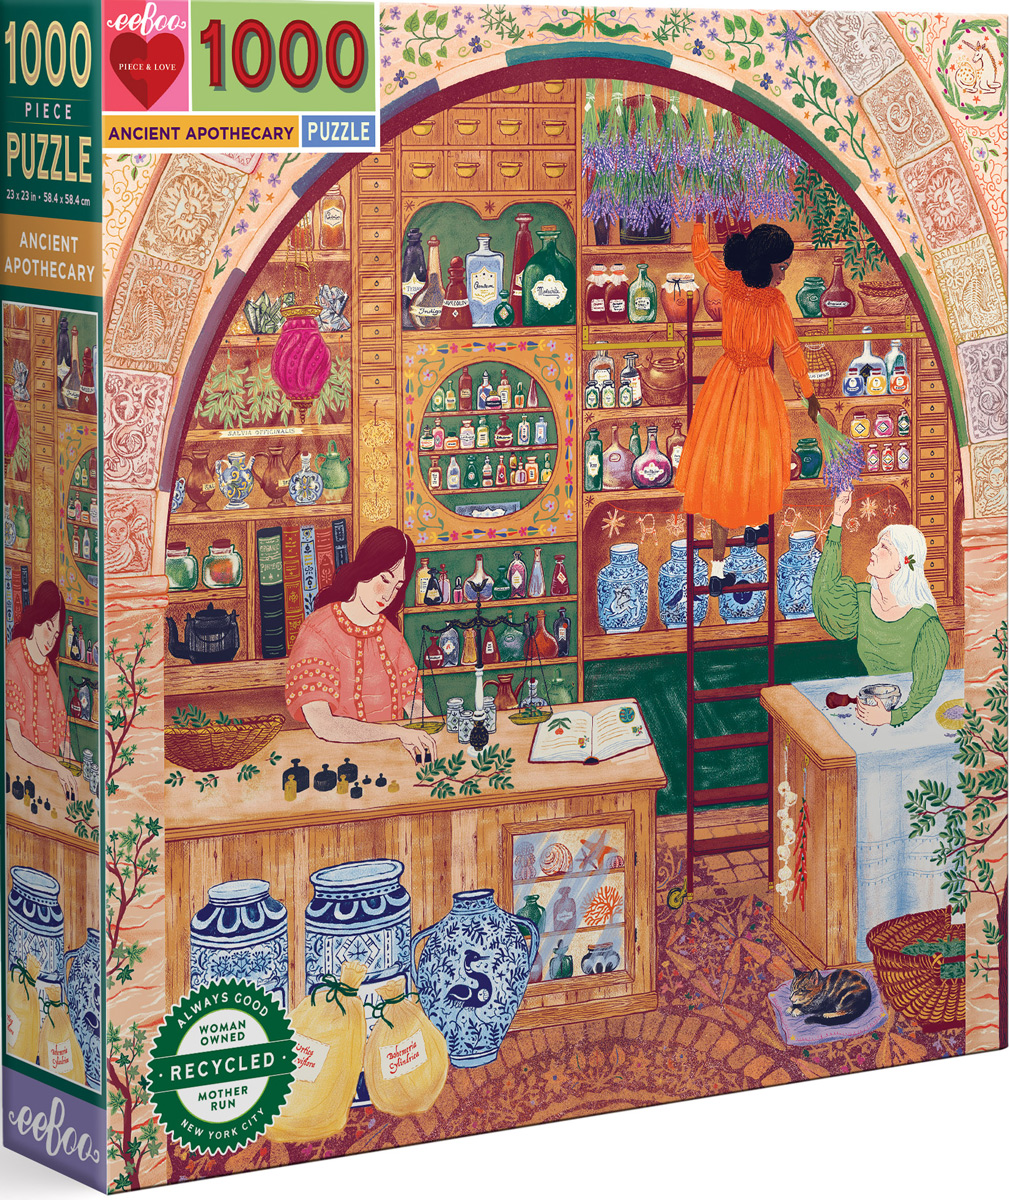 Ancient Apothecary Anatomy & Biology Jigsaw Puzzle